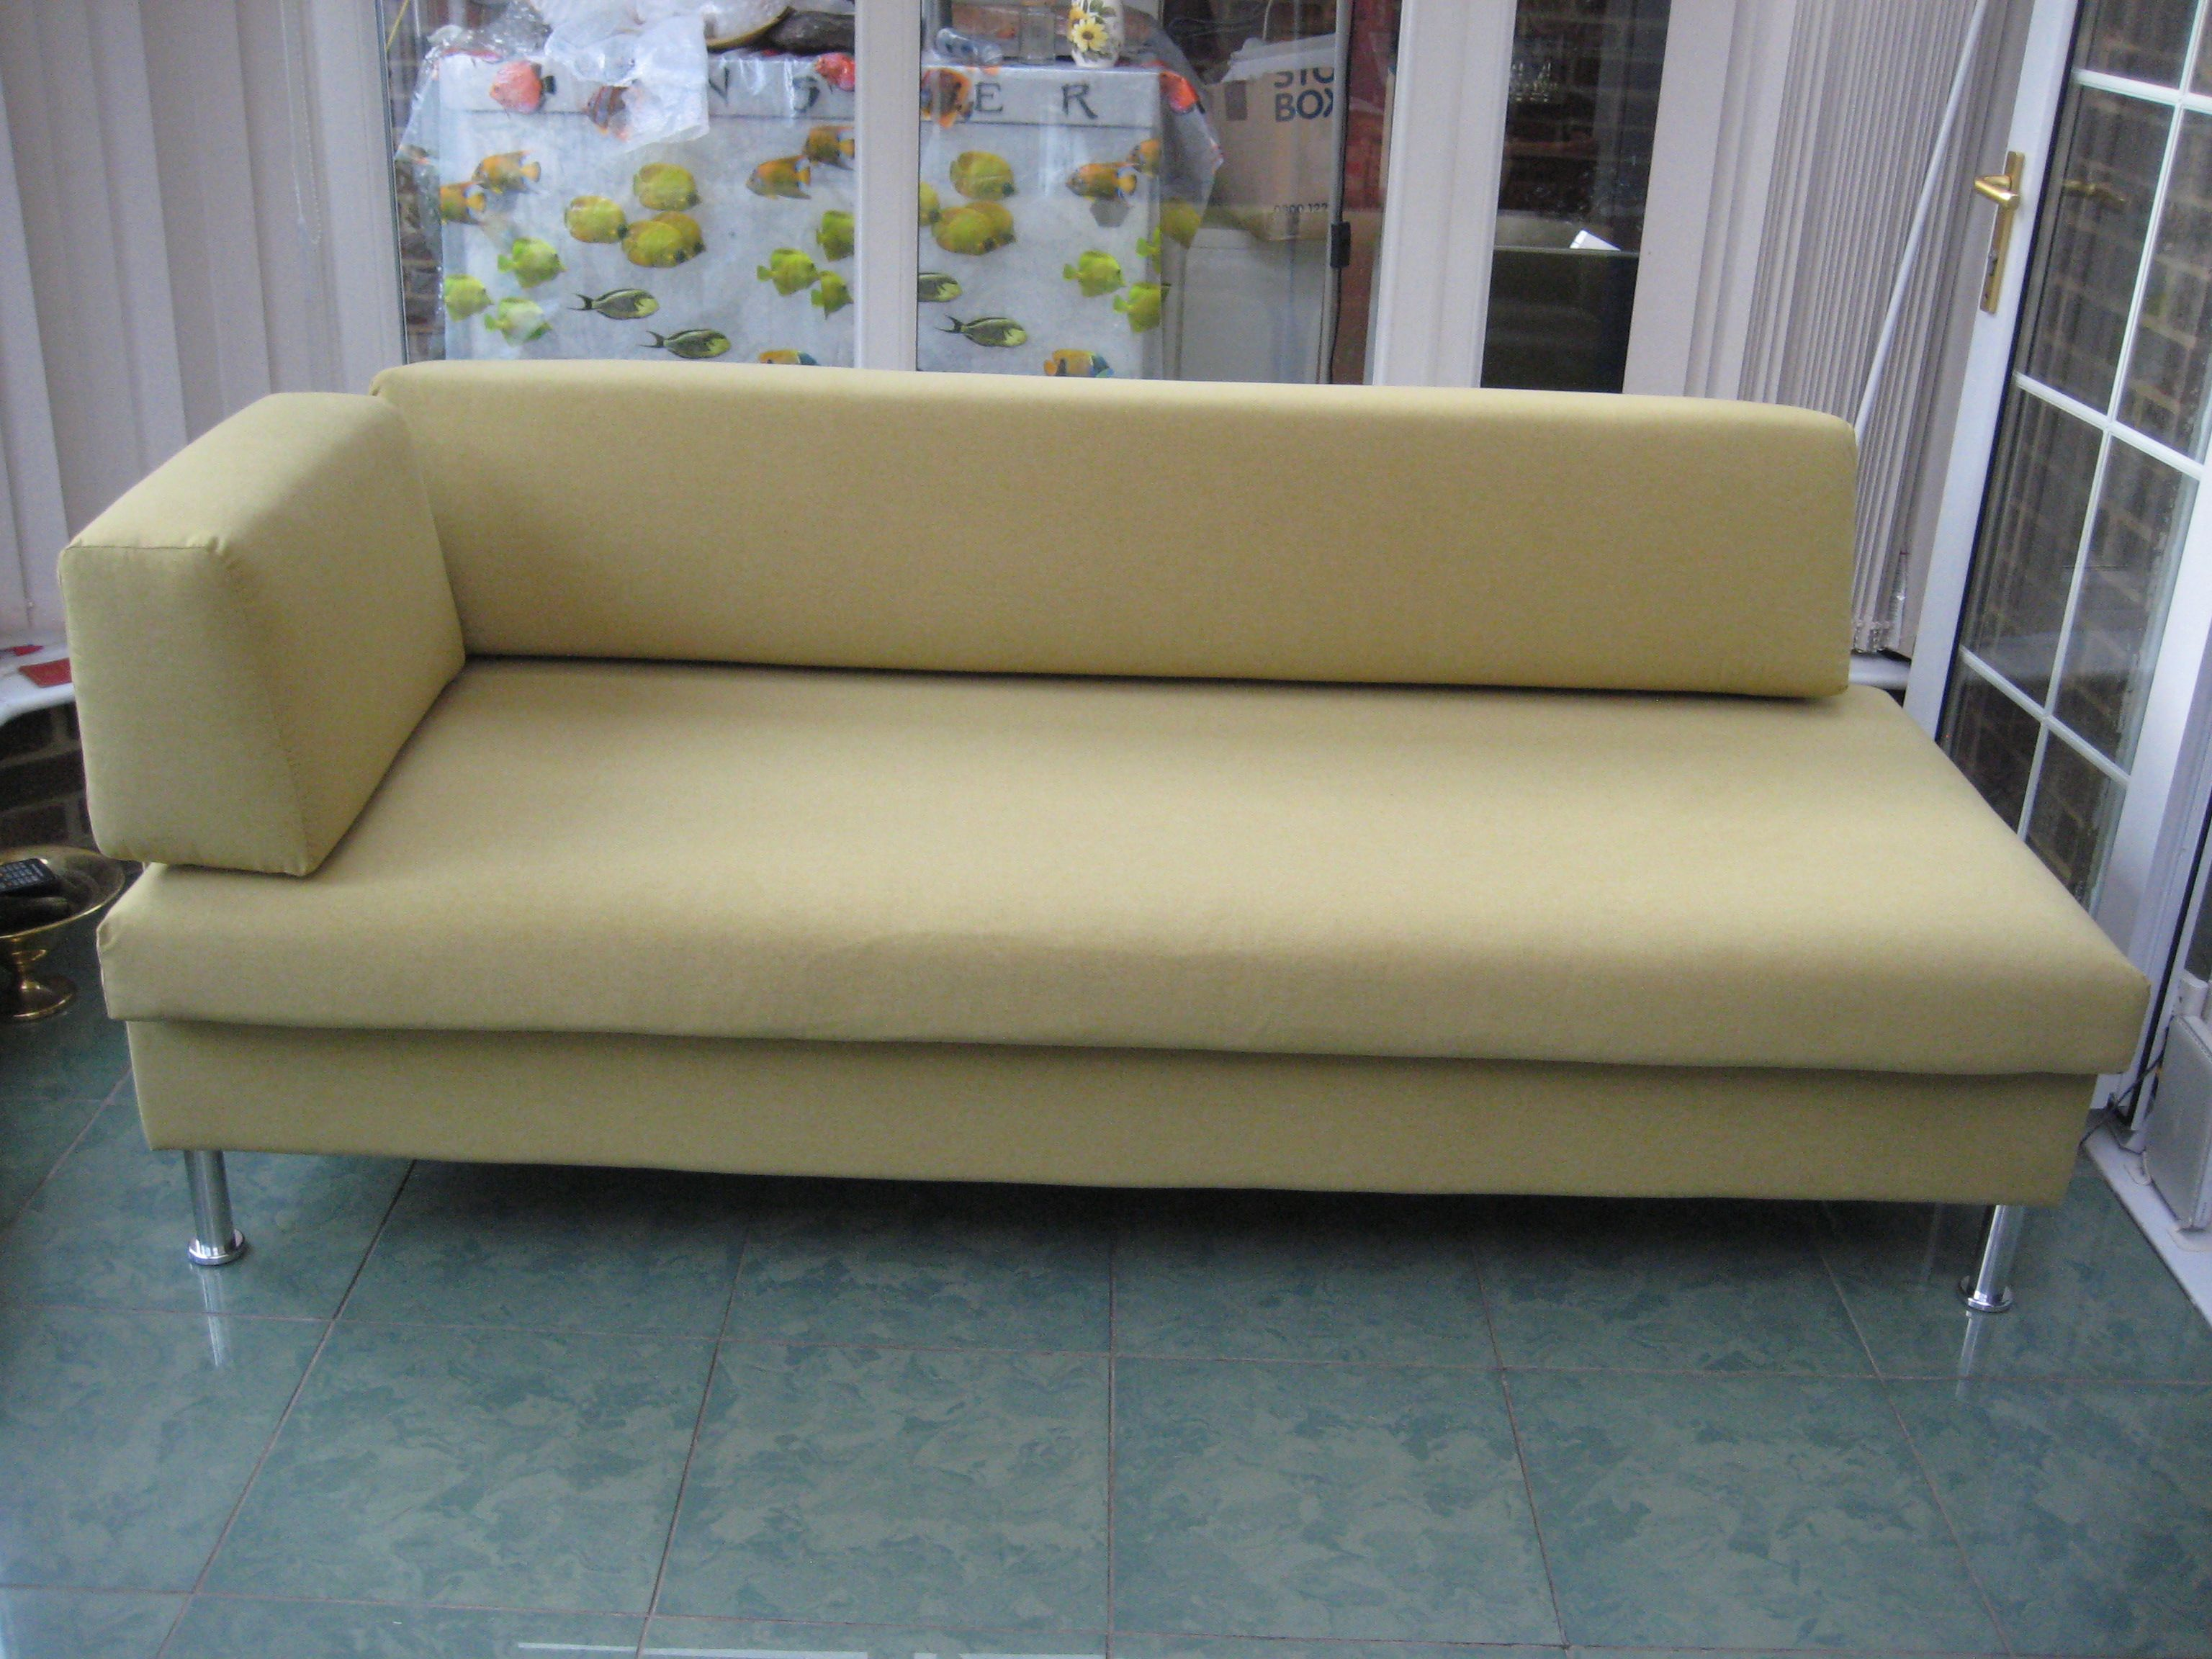 Doppio double sofa bed contemporary day bed from Swissplus 1 x